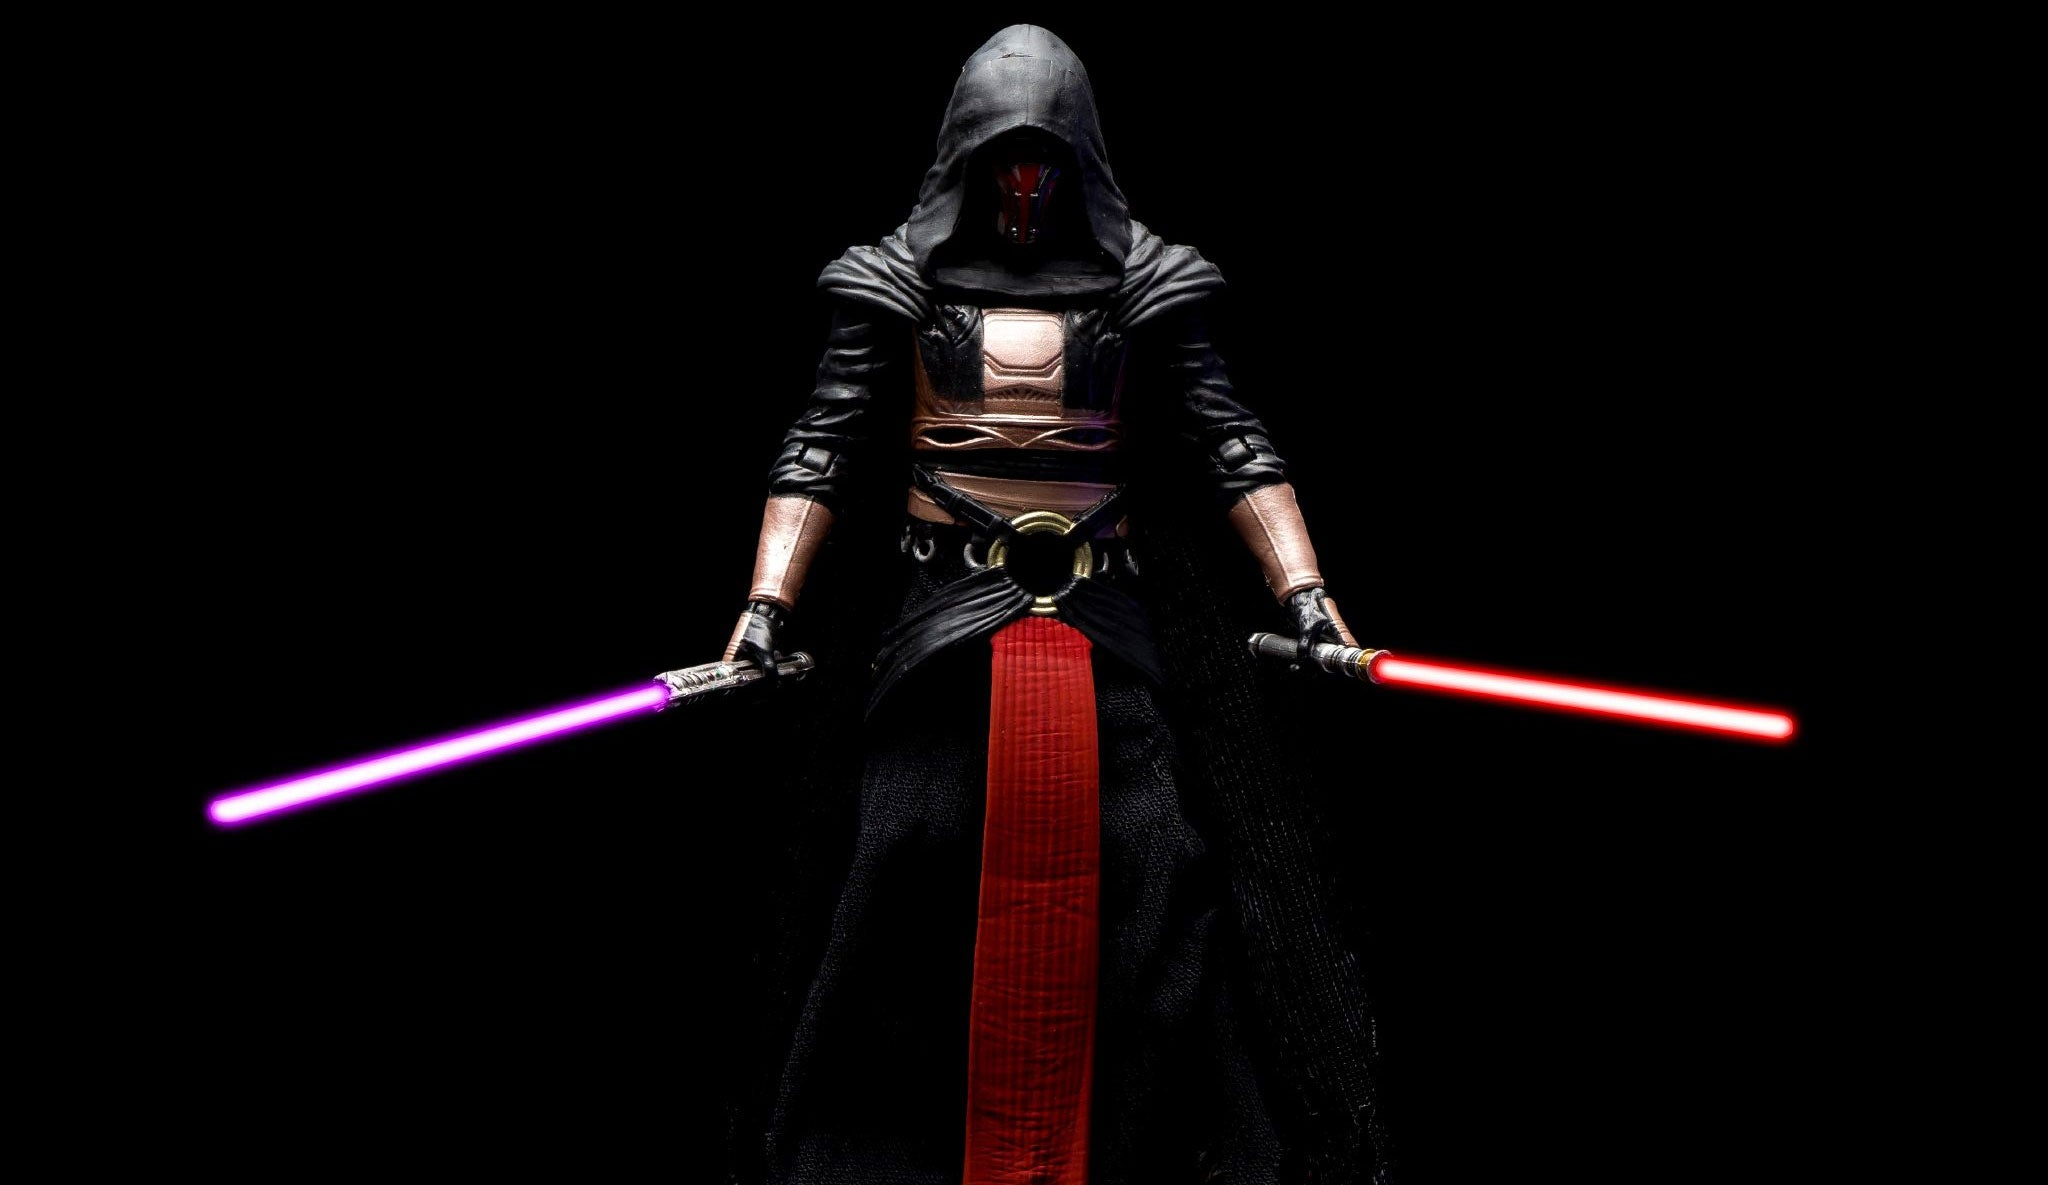 Look At This Official KOTOR Action Figure